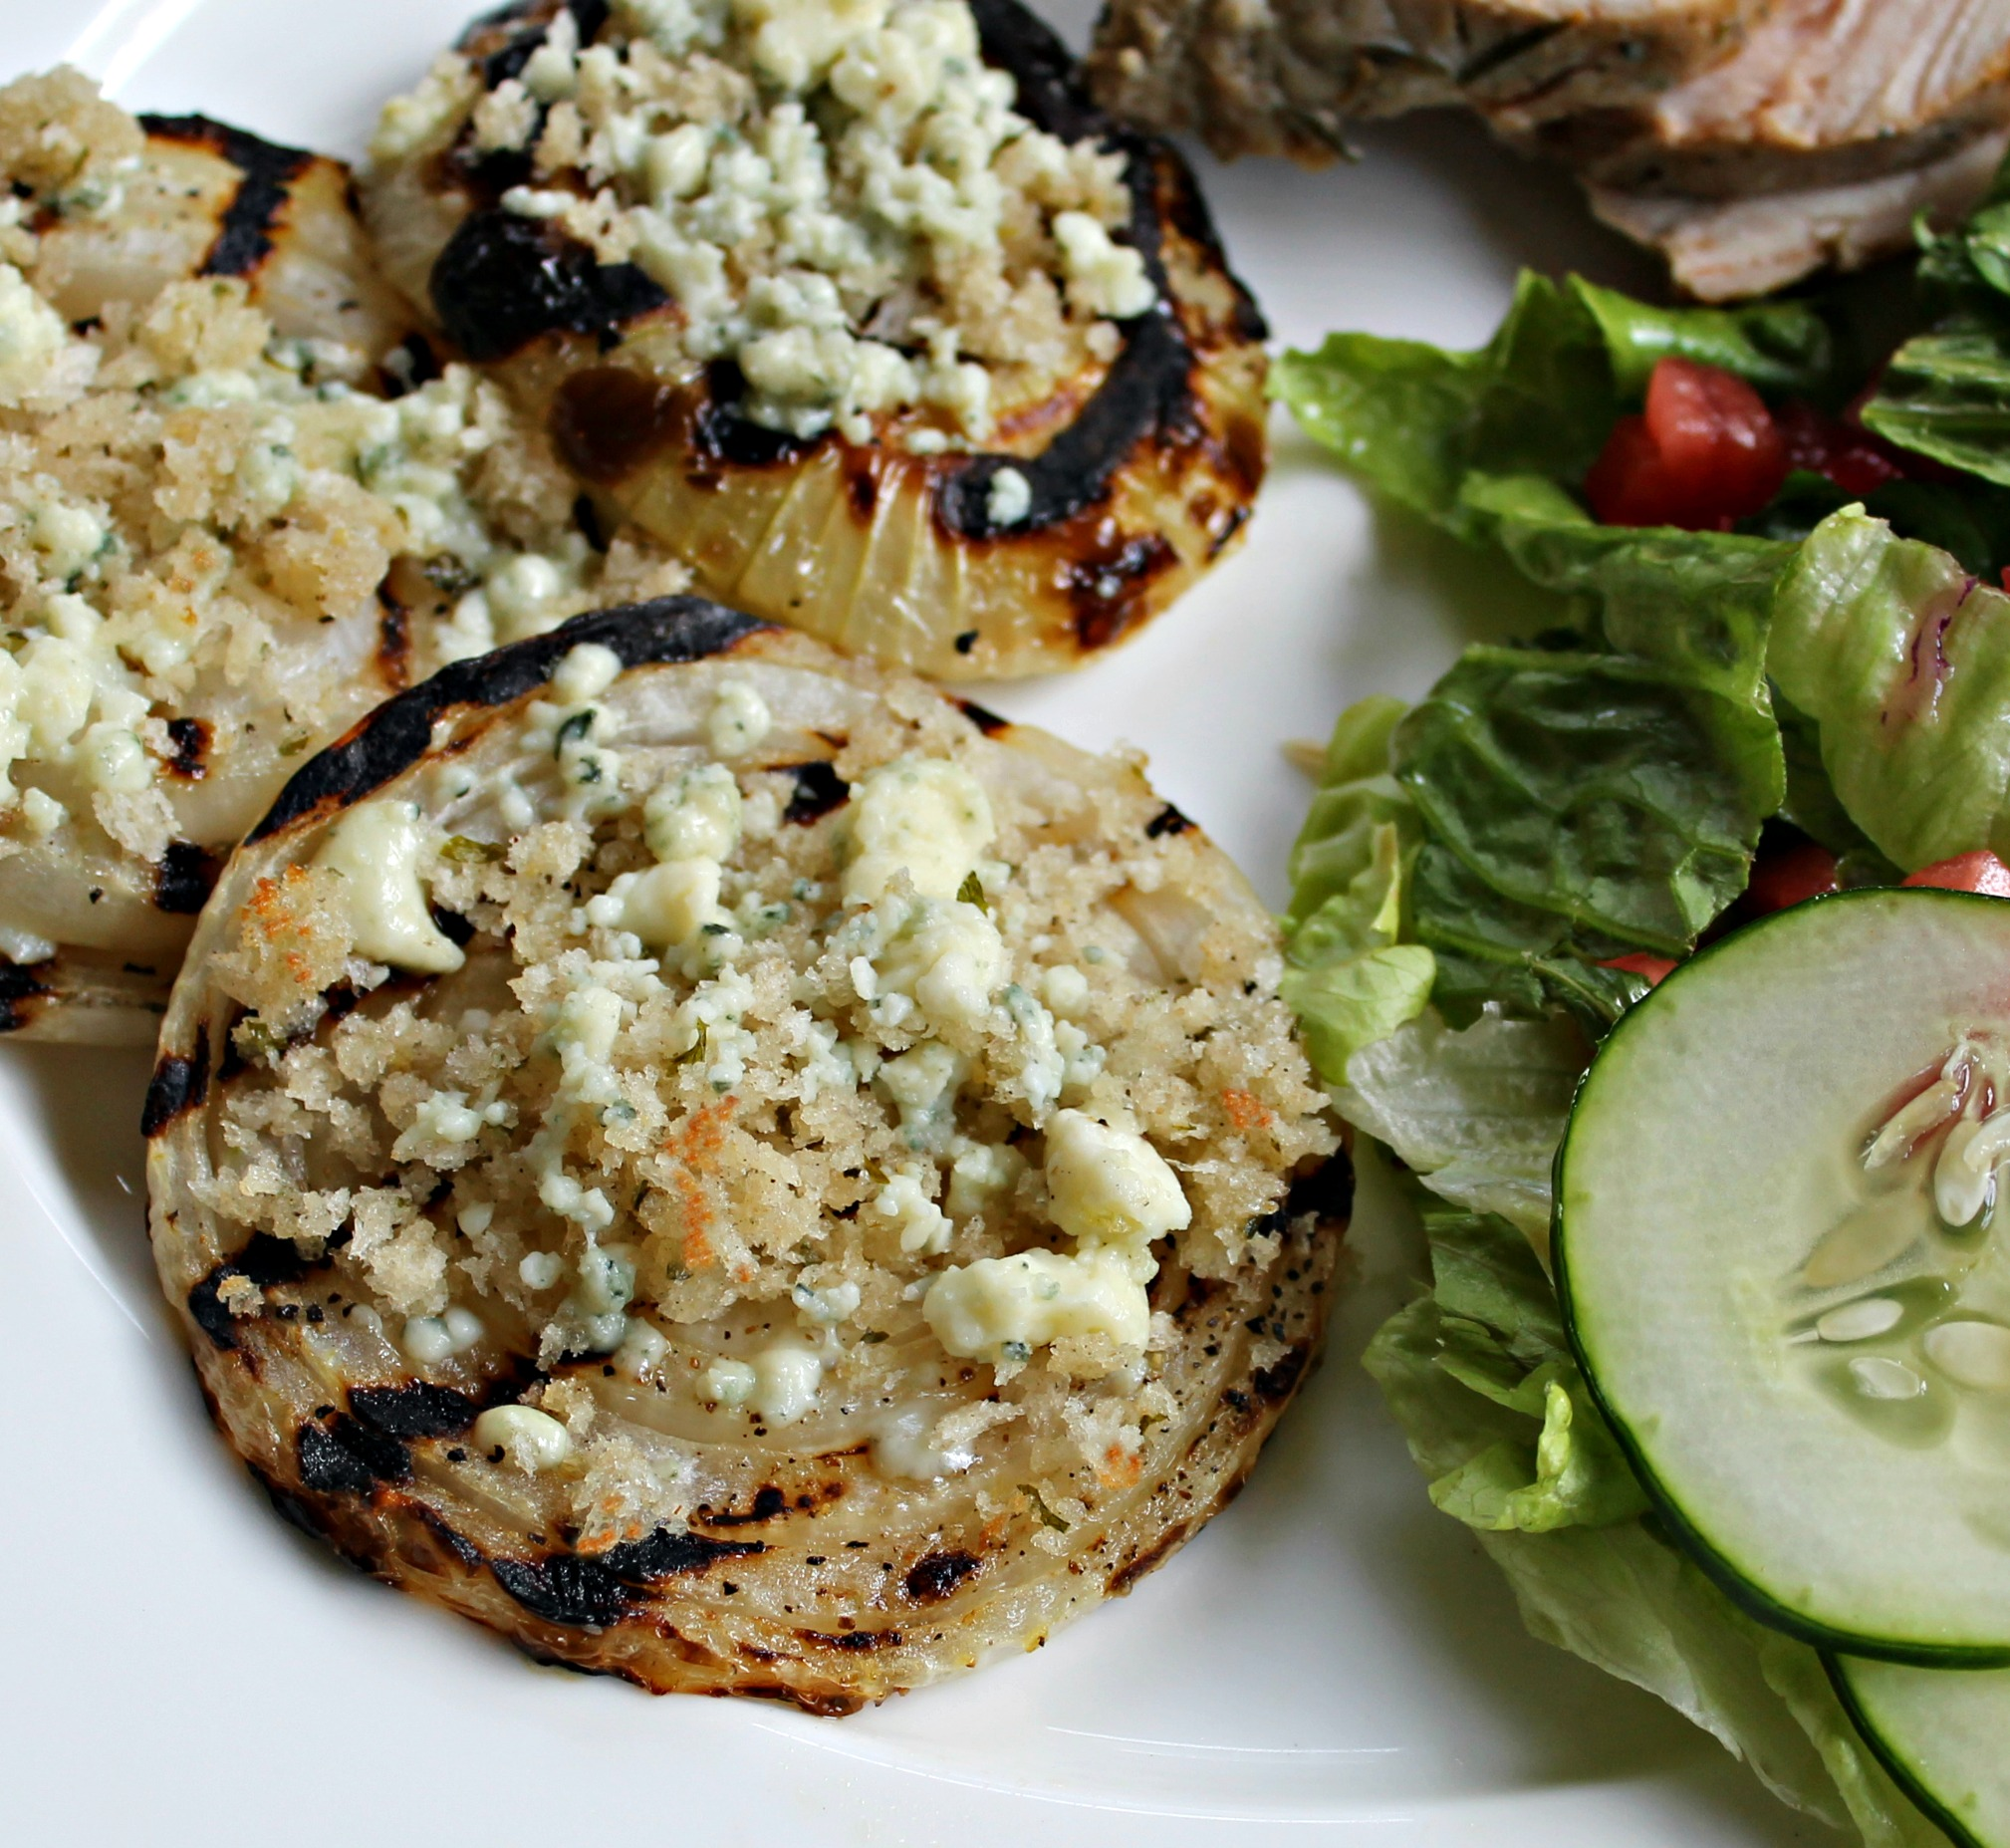 Grilled Vidalia Onion With Blue Cheese